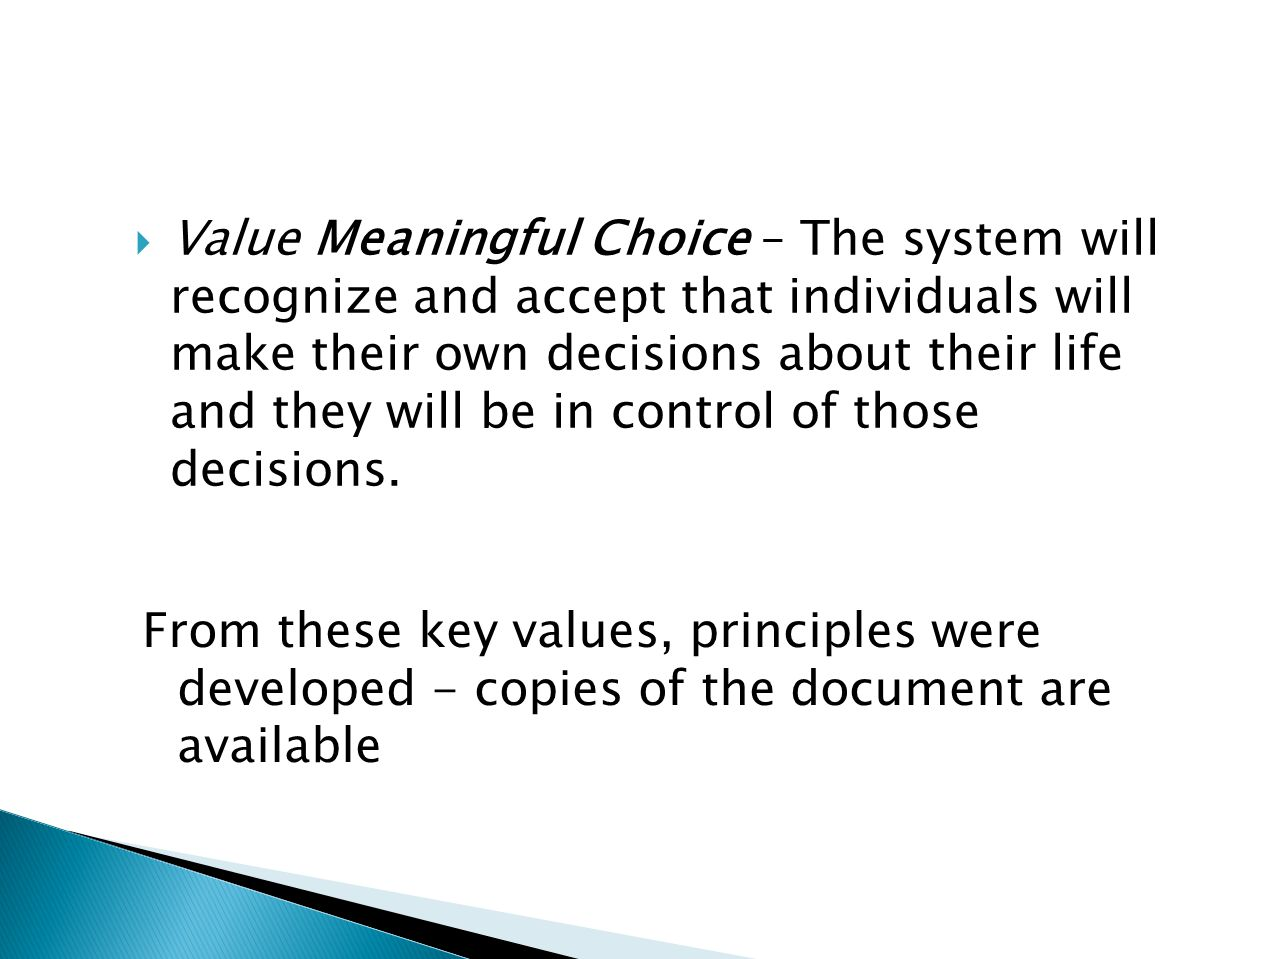  Value Meaningful Choice – The system will recognize and accept that individuals will make their own decisions about their life and they will be in control of those decisions.